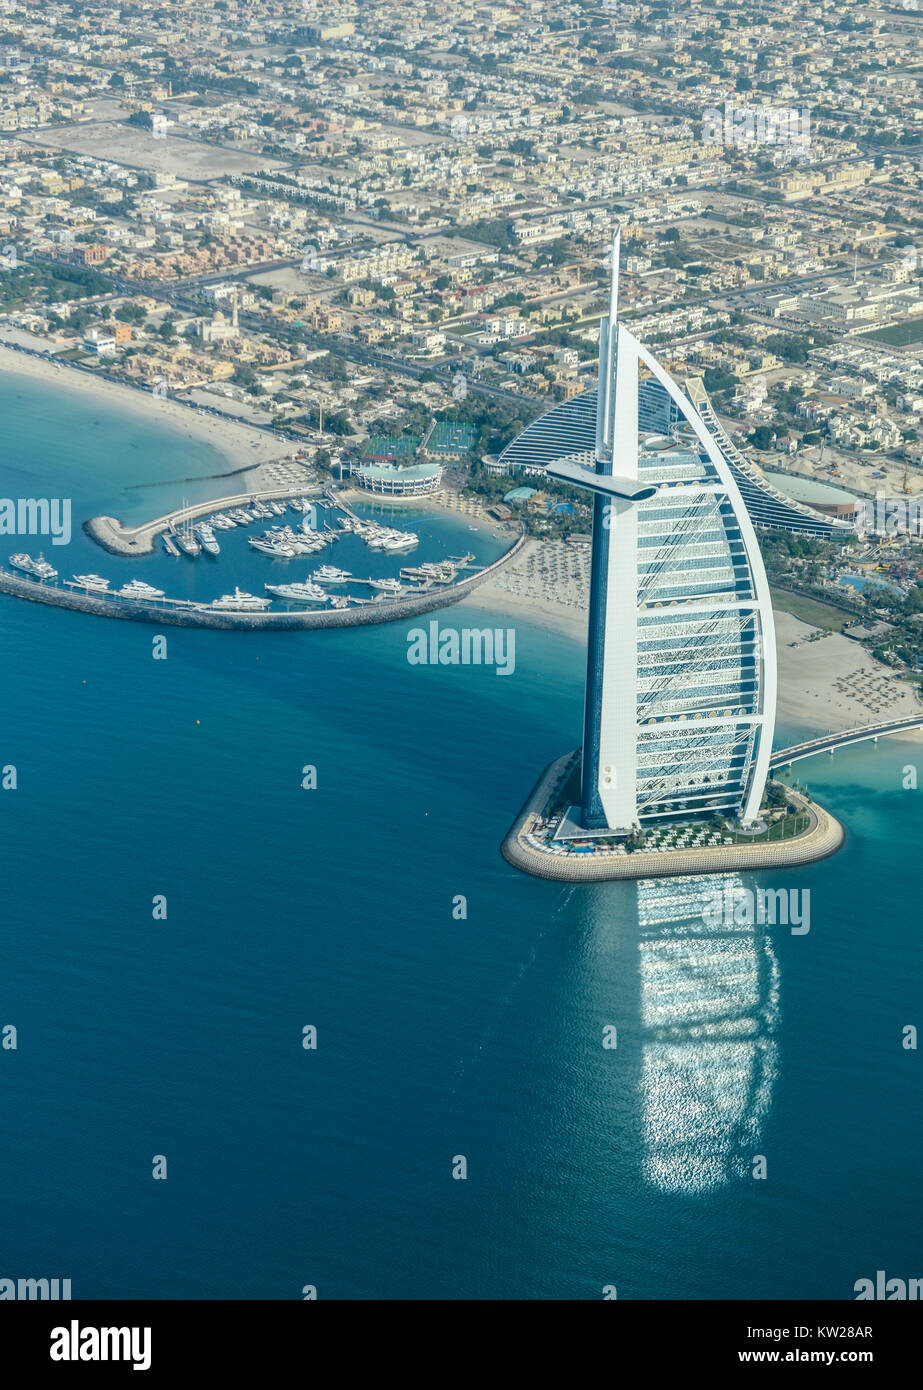 Dubai, UAE - November 25, 2012: View of the luxury beach of Dubai and Burj al-Arab, in Dubai,UAE. The Bur is the - Stock Image